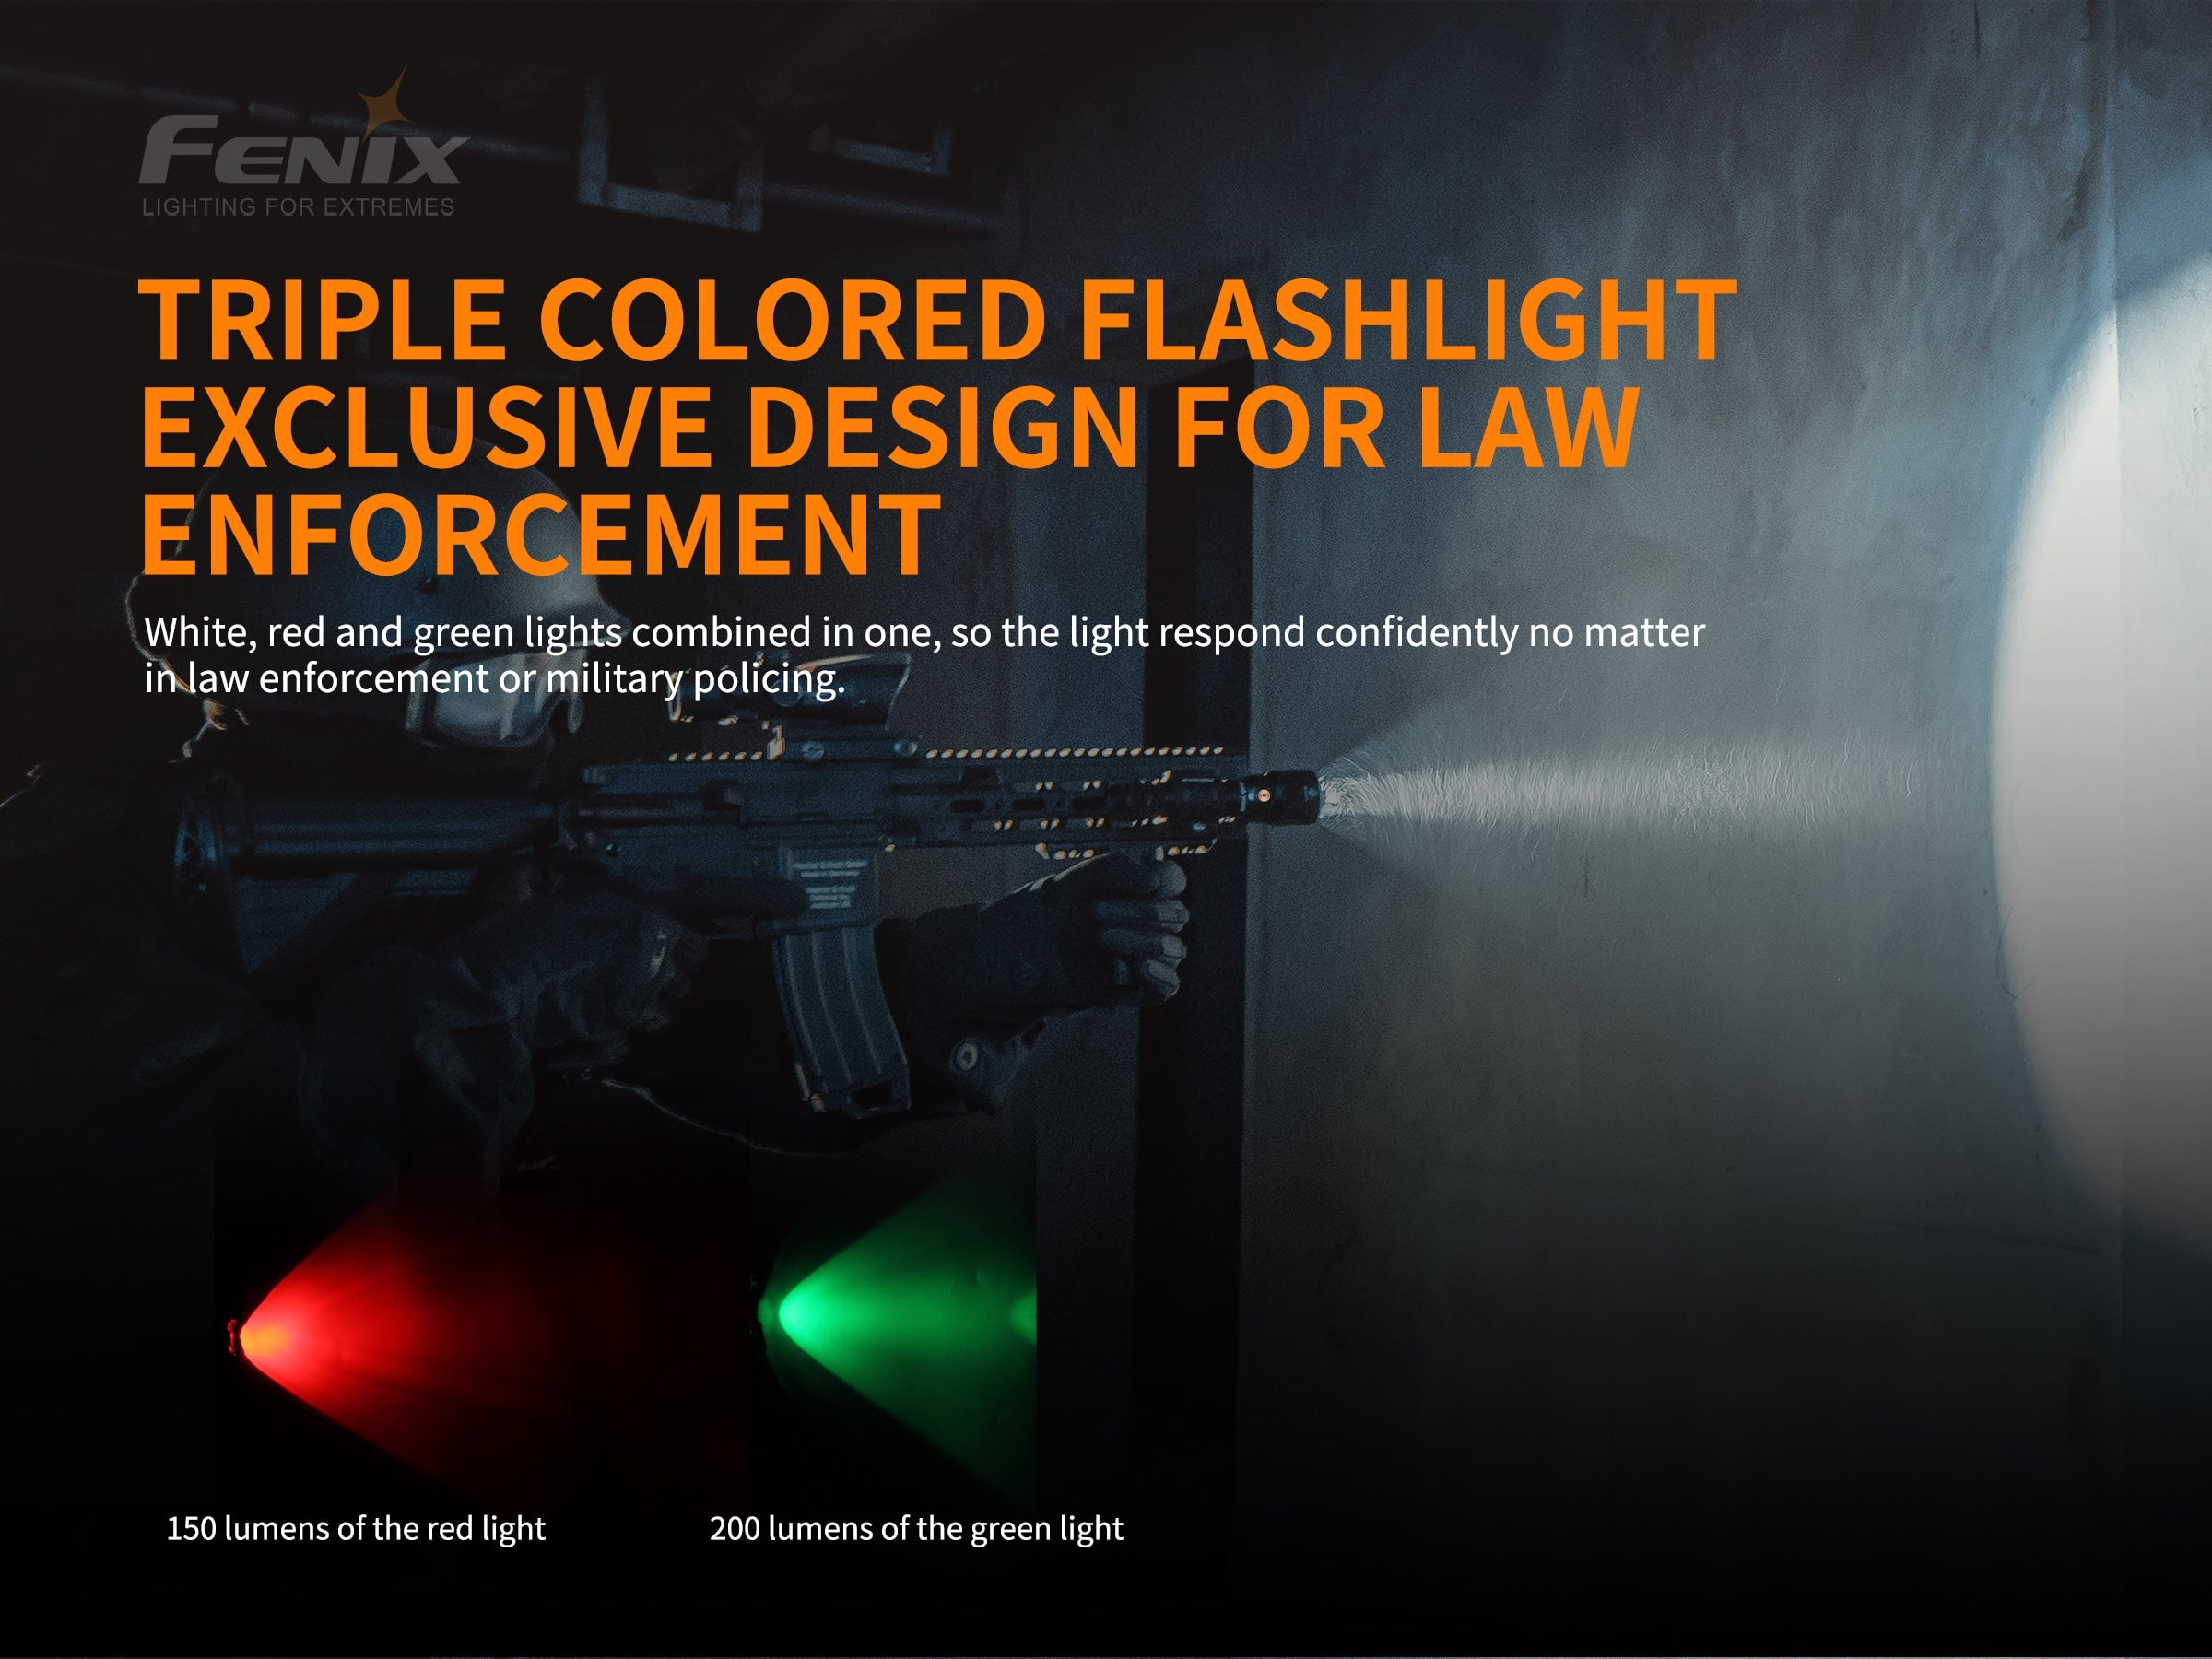 Fenix TK26R LED torch Light in India, Fenix TK26R Rechargeable Powerful Light with 3 LEDs, Tri-Color Torch White Red & Green, Long Range Flashlight for Outdoors, Jungles Hunting Treks